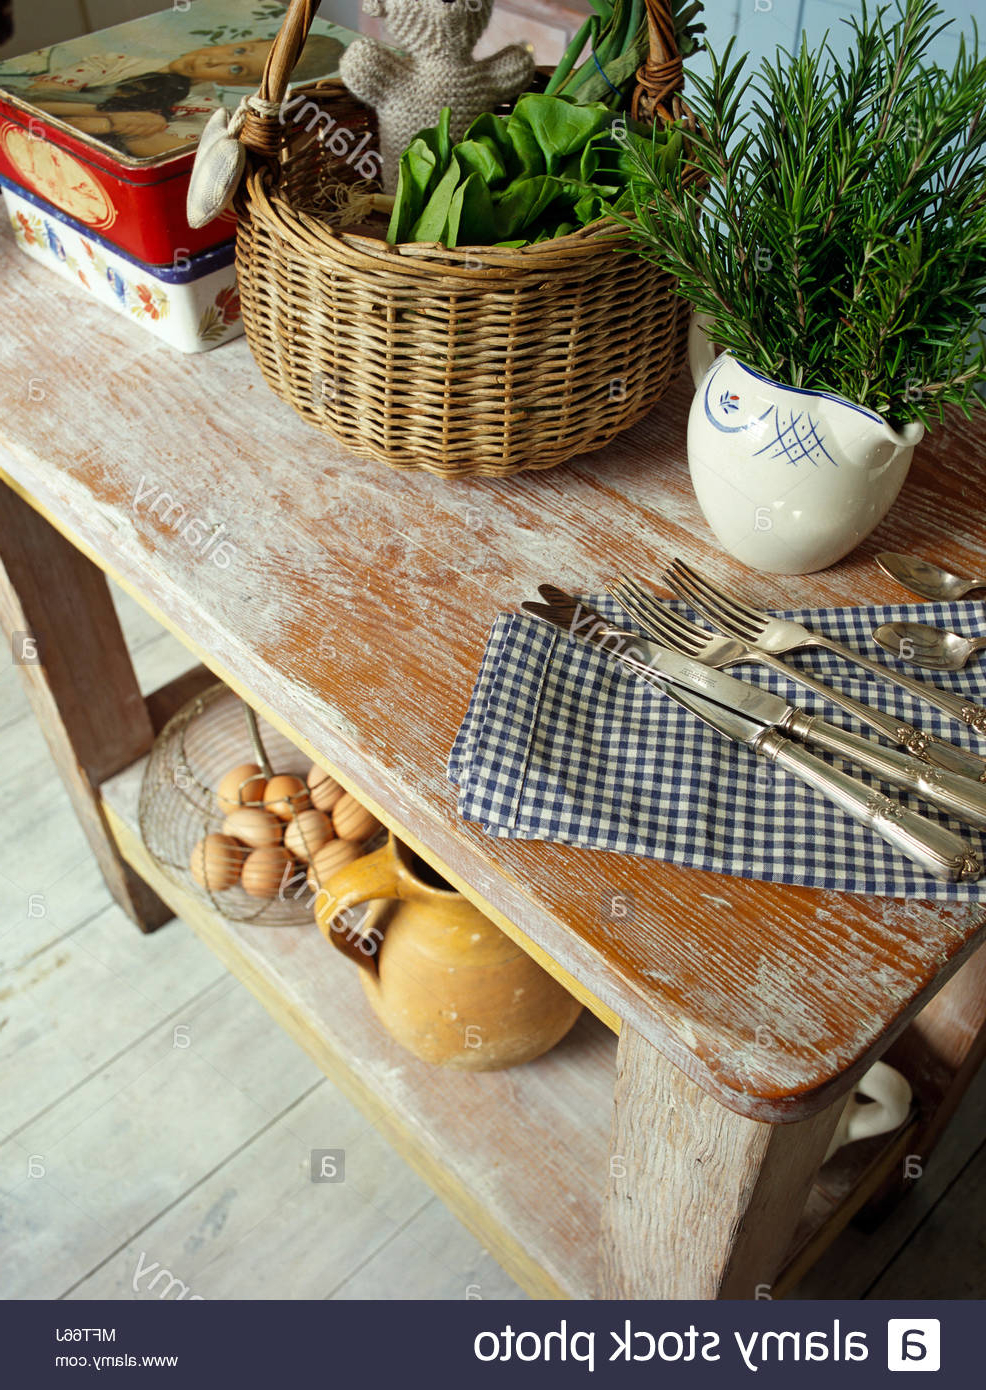 Popular Rustic Coffee Tables With Wicker Storage Baskets In Wicker Basket And Cutlery On Rustic Wooden Table Stock Photo (View 19 of 20)